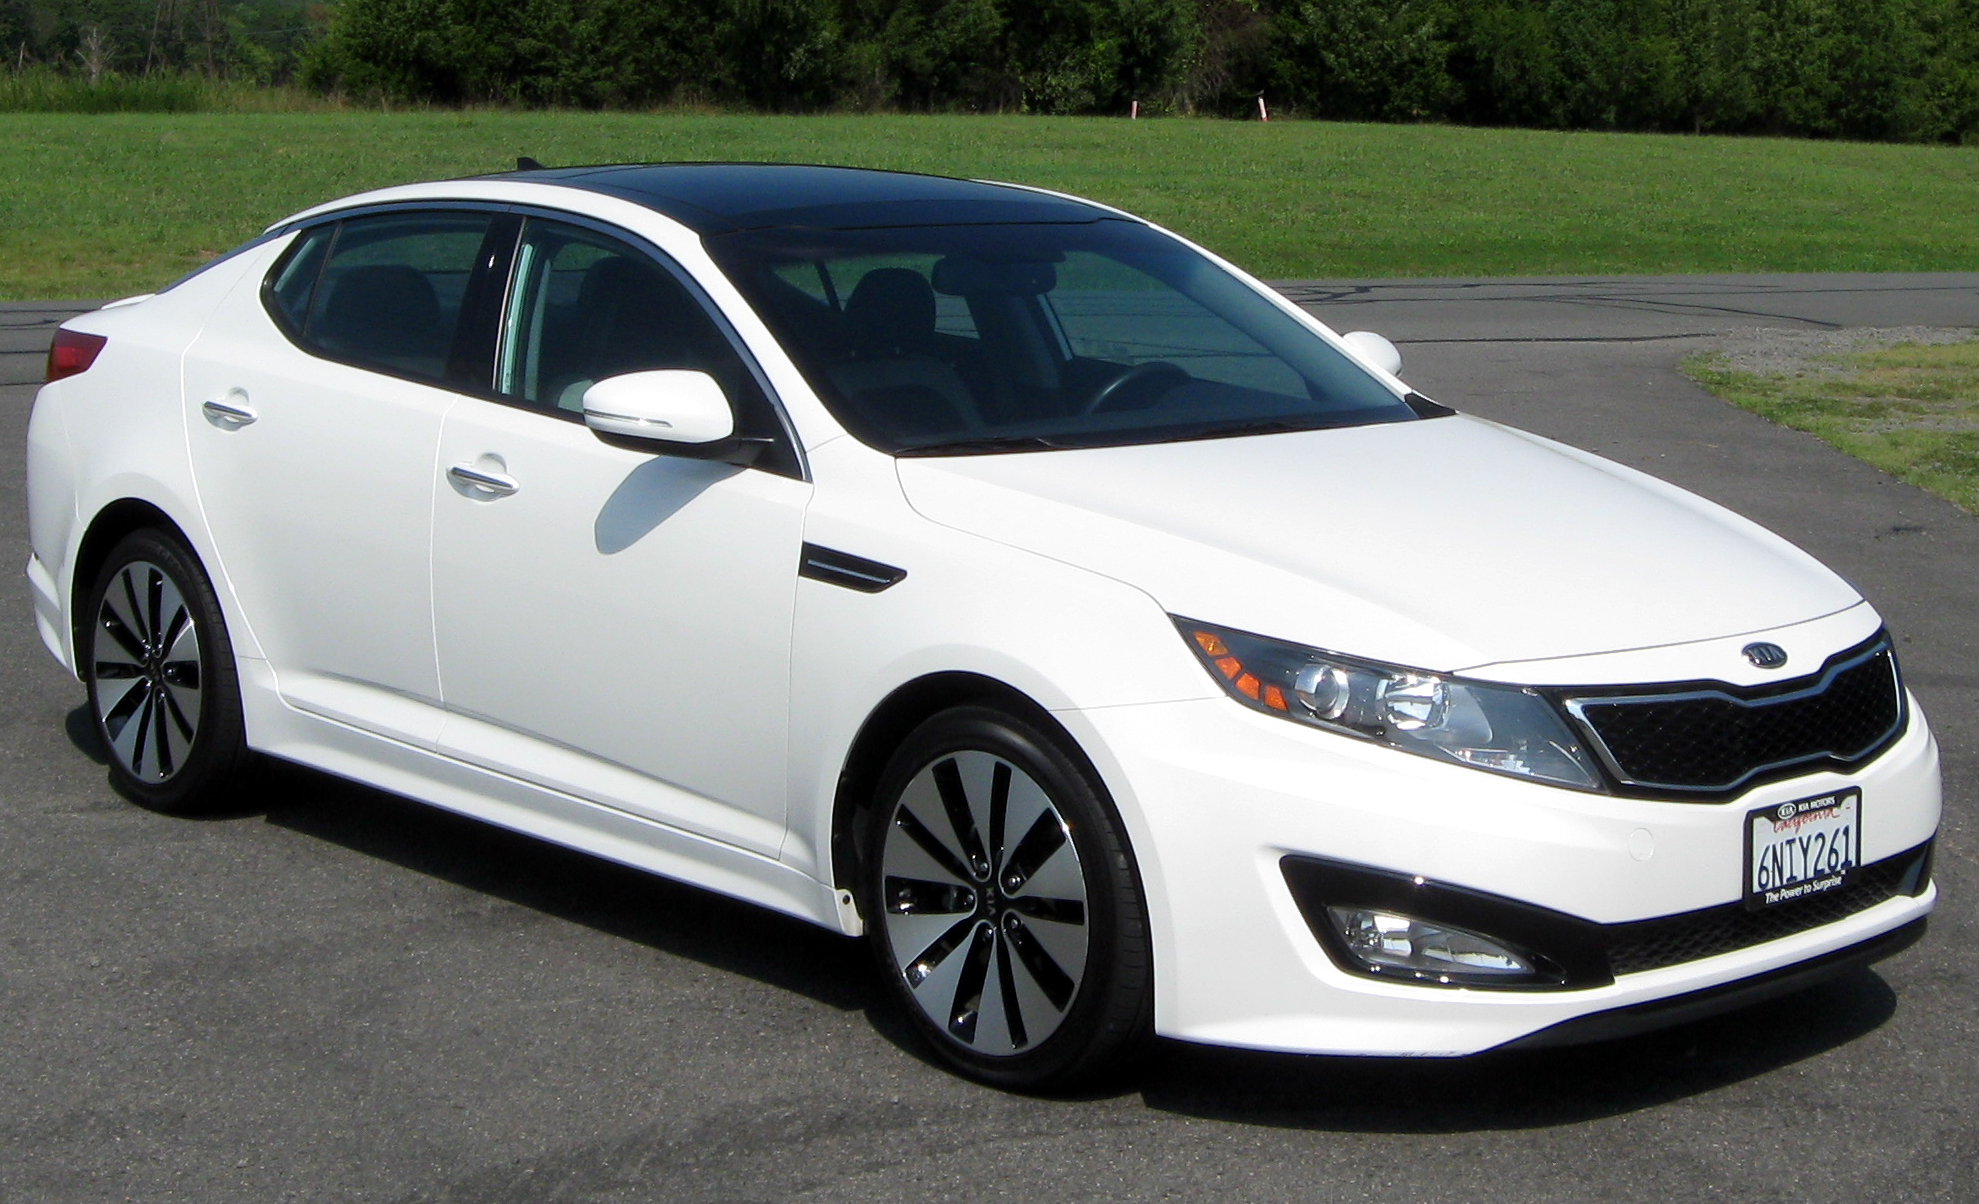 File:2011 Kia Optima SX -- 08-26-2011.jpg - Wikimedia Commons